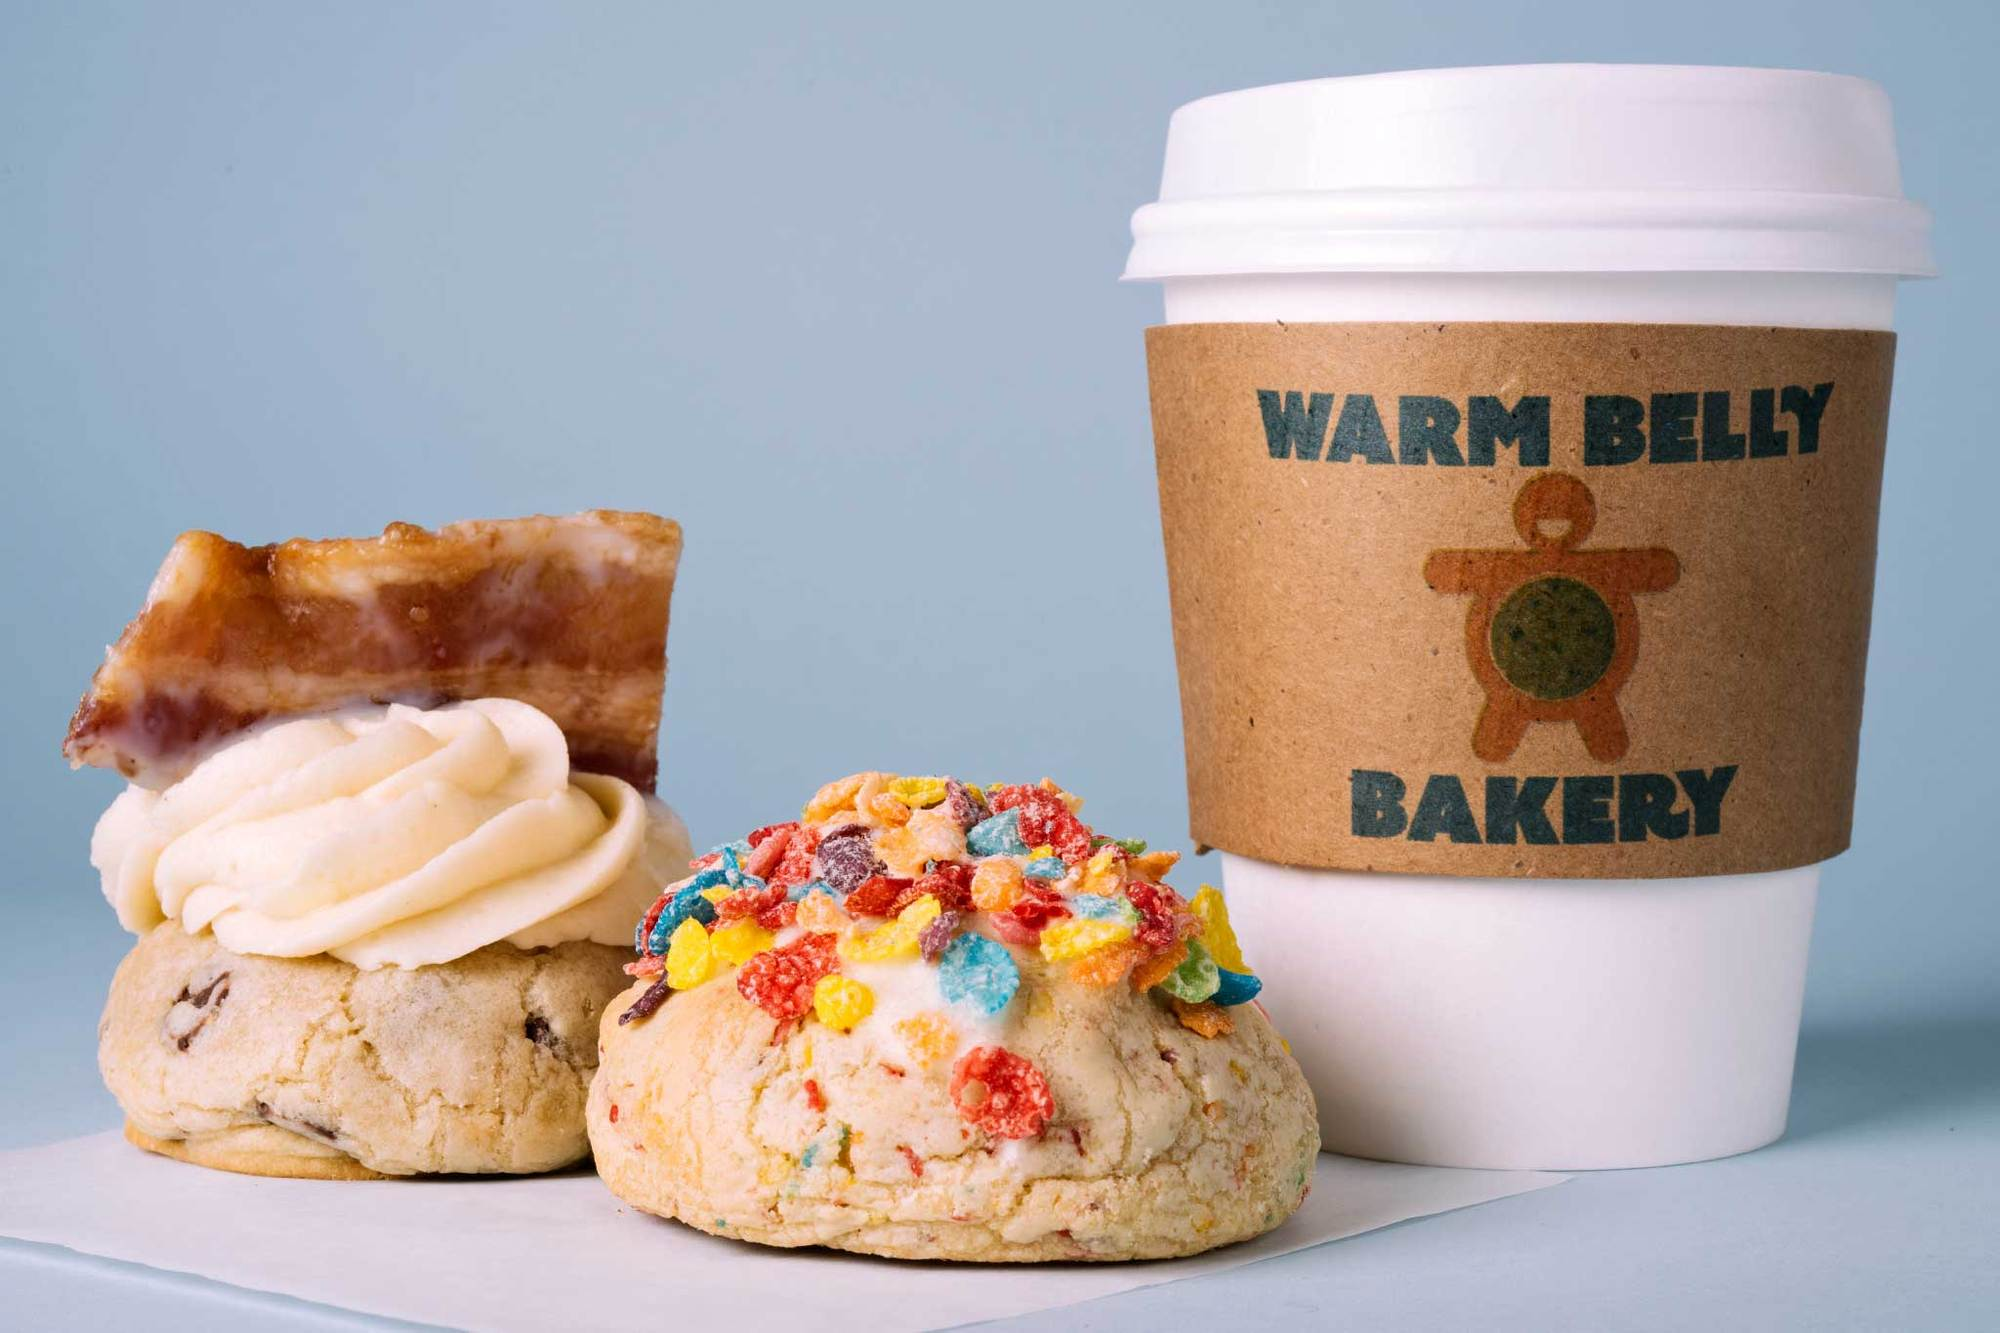 Two cookies and a coffee cup from Warm Belly with lots of colorful toppings.